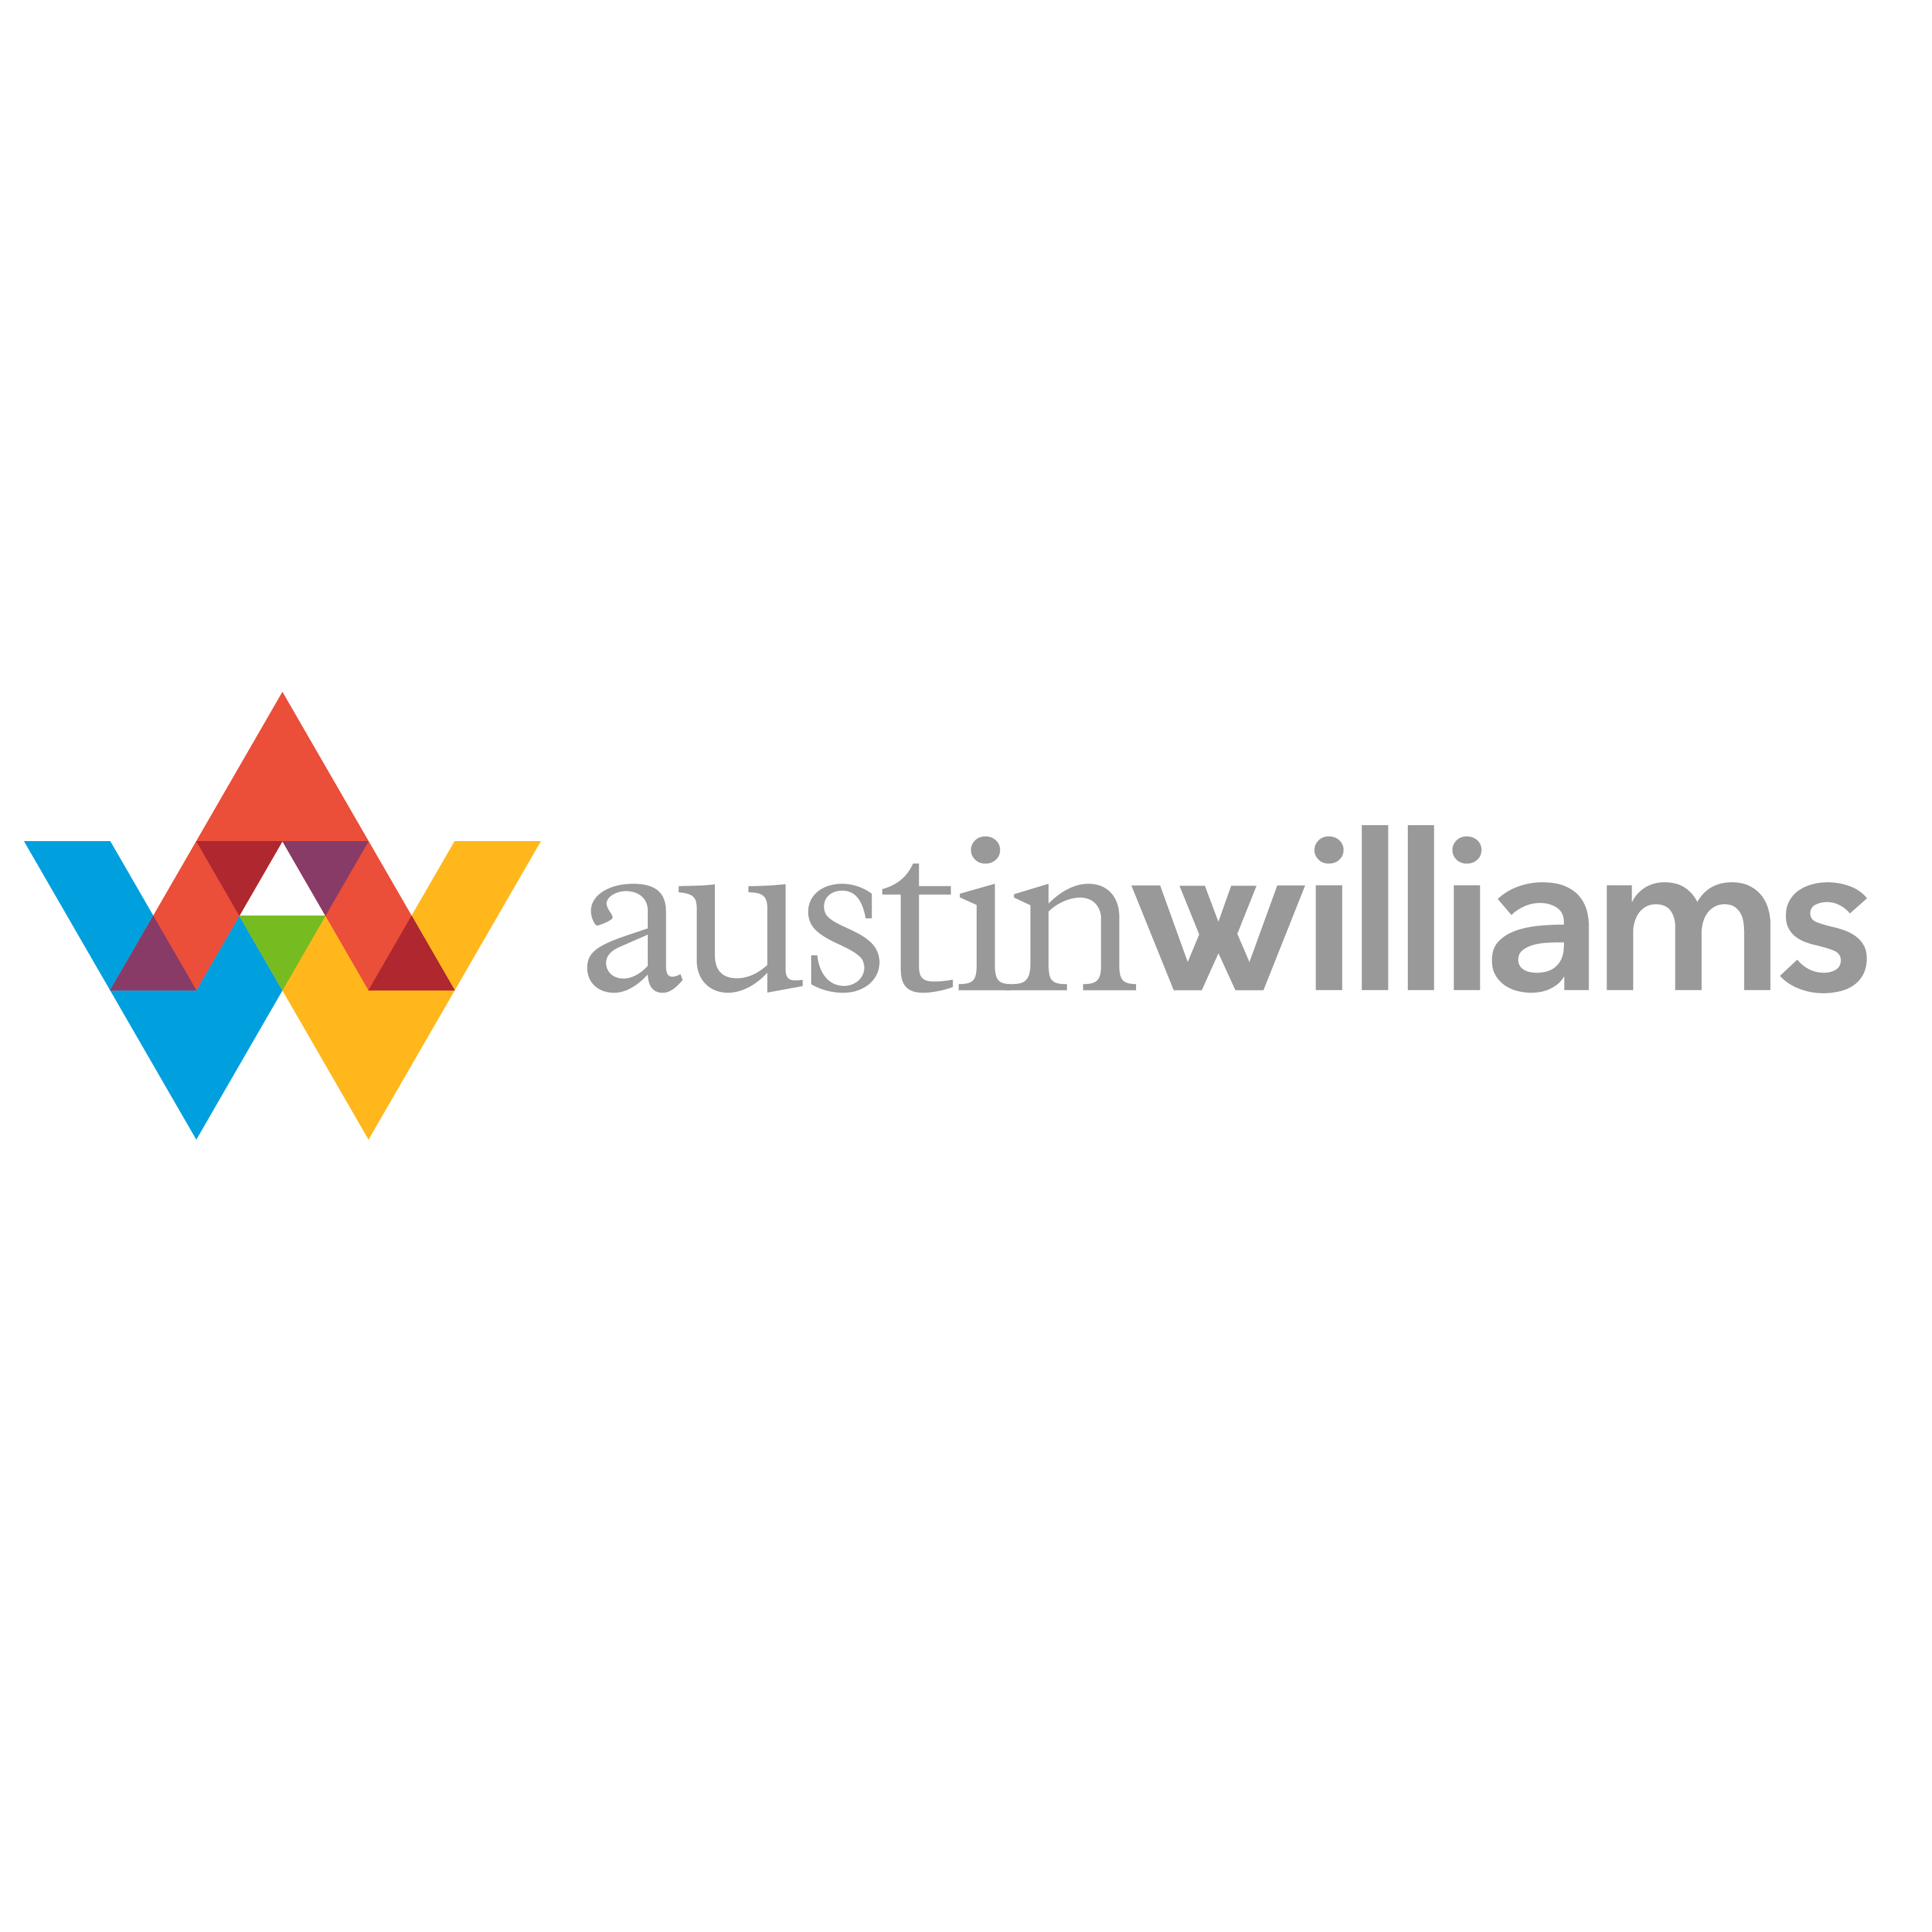 Austin Williams